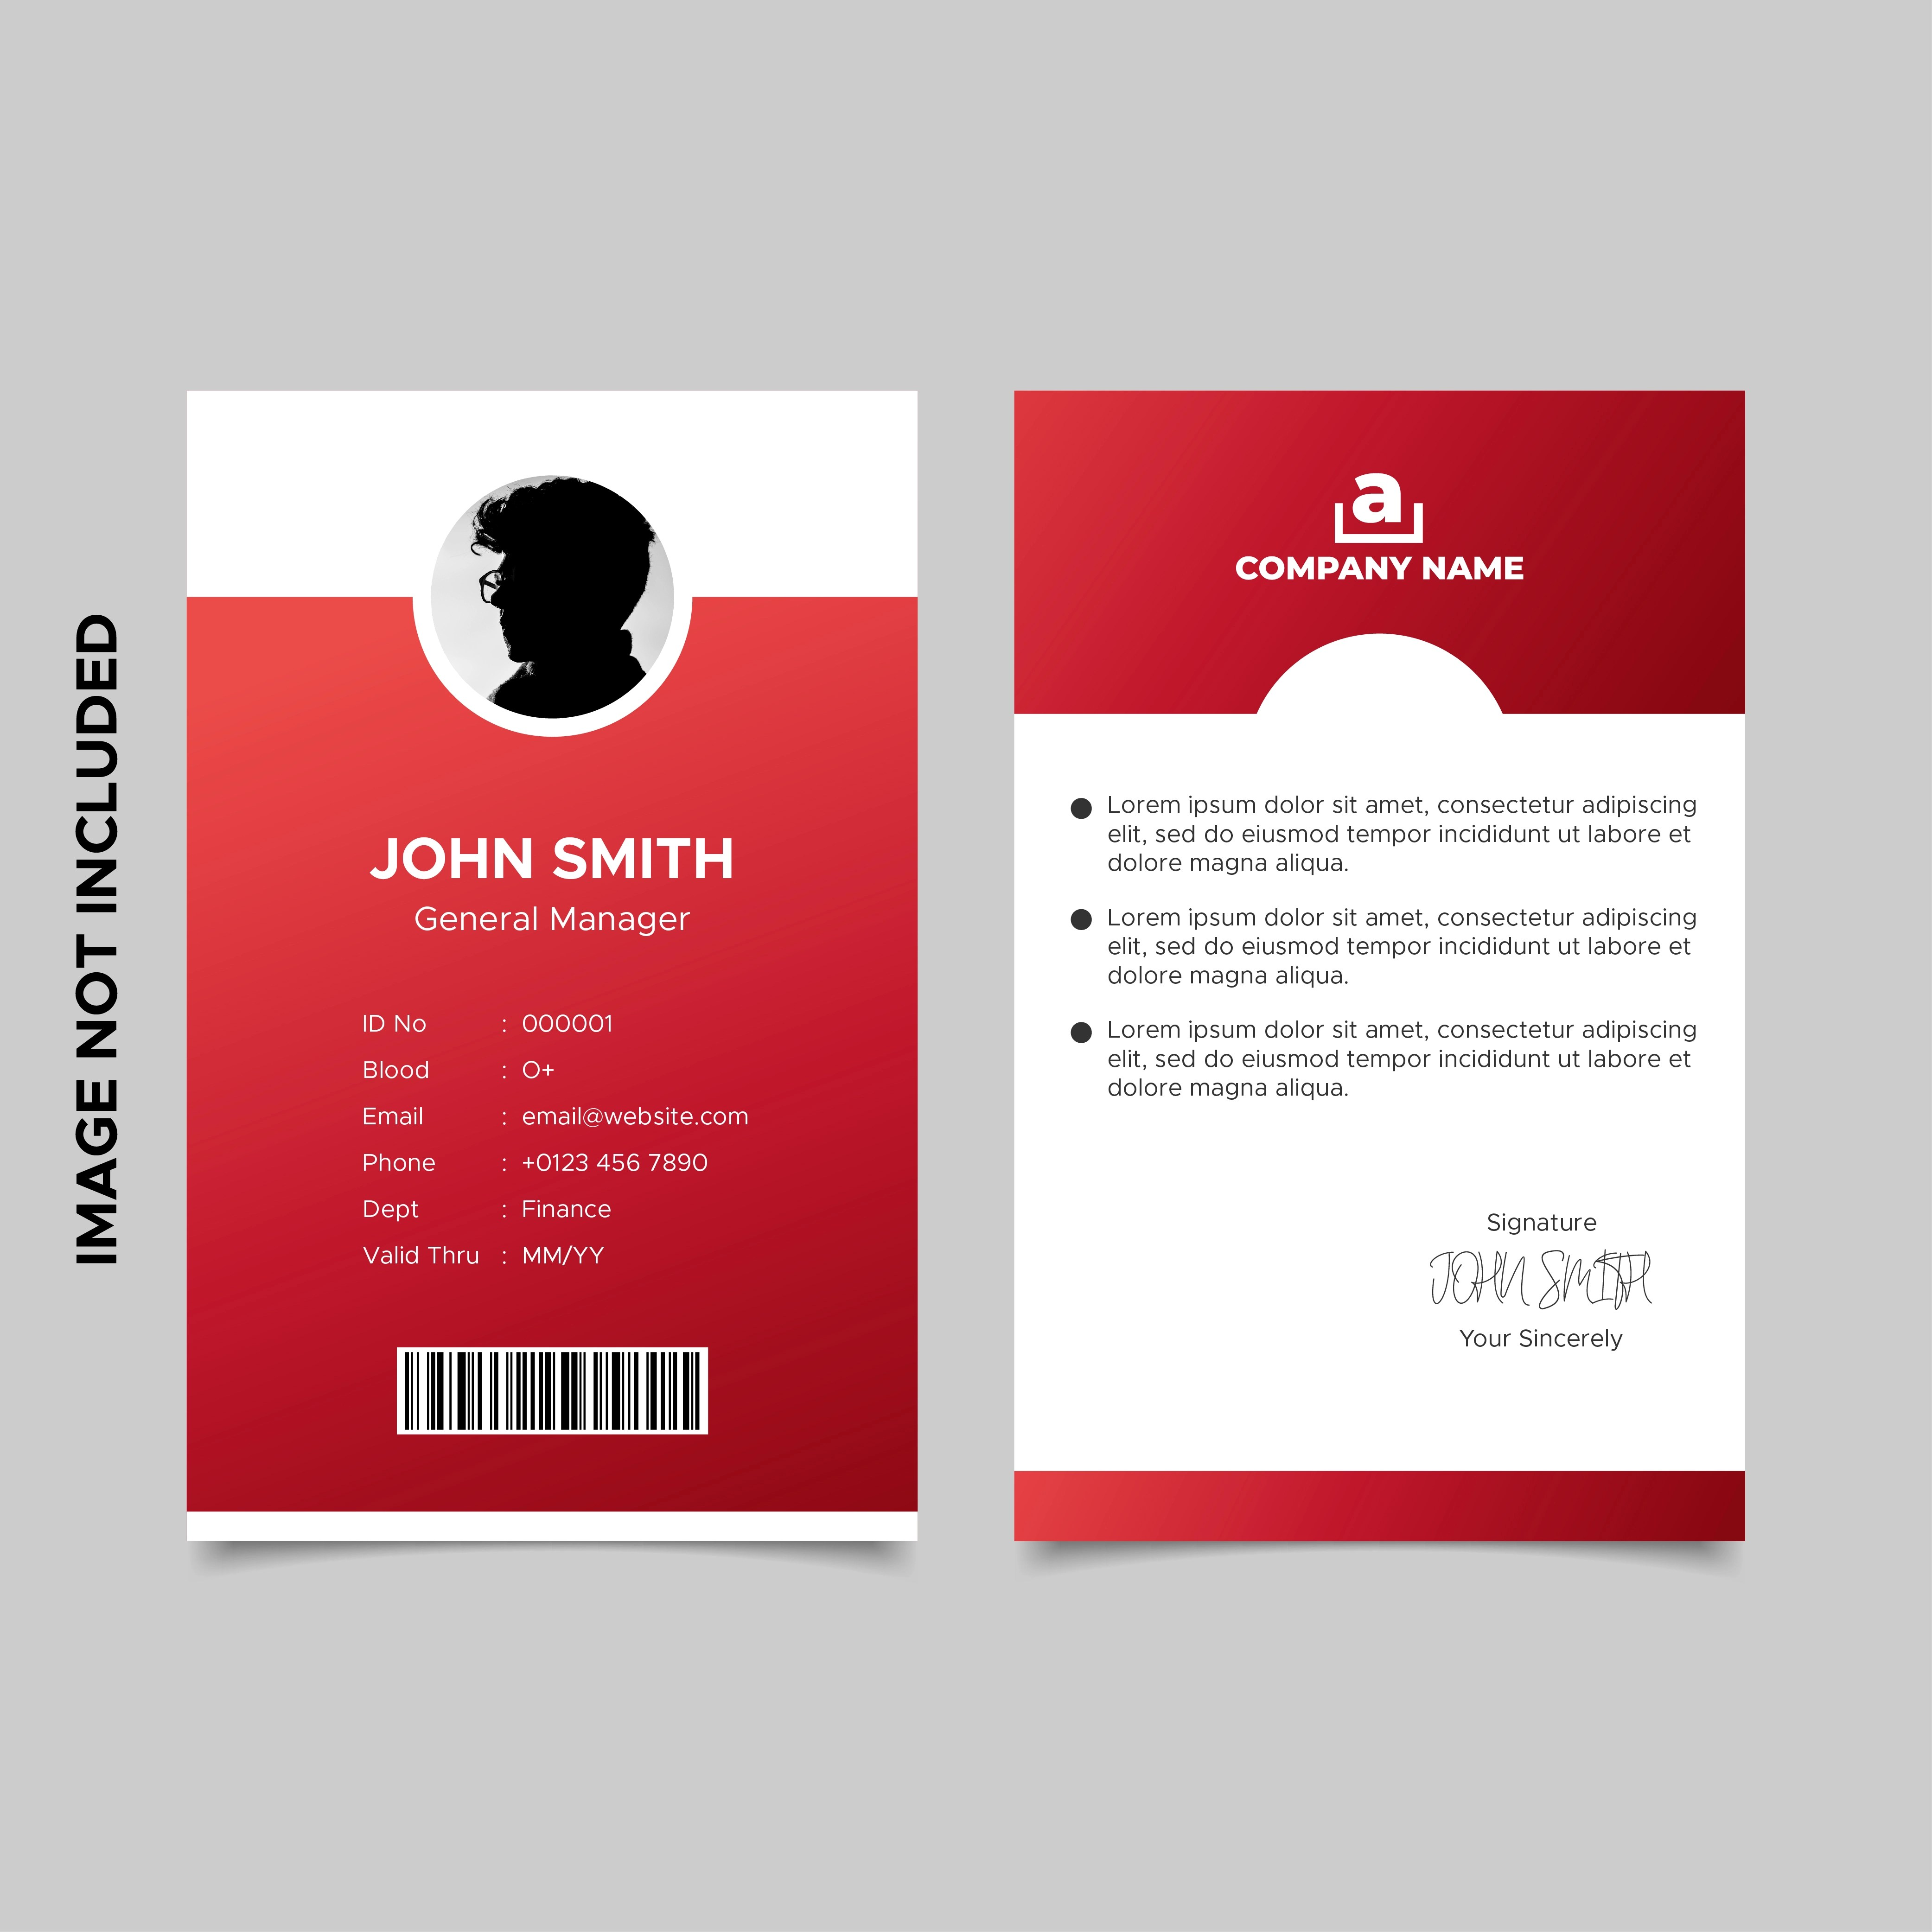 Id card design templates free to download. Red Employee Id Card Template 830621 Vector Art At Vecteezy